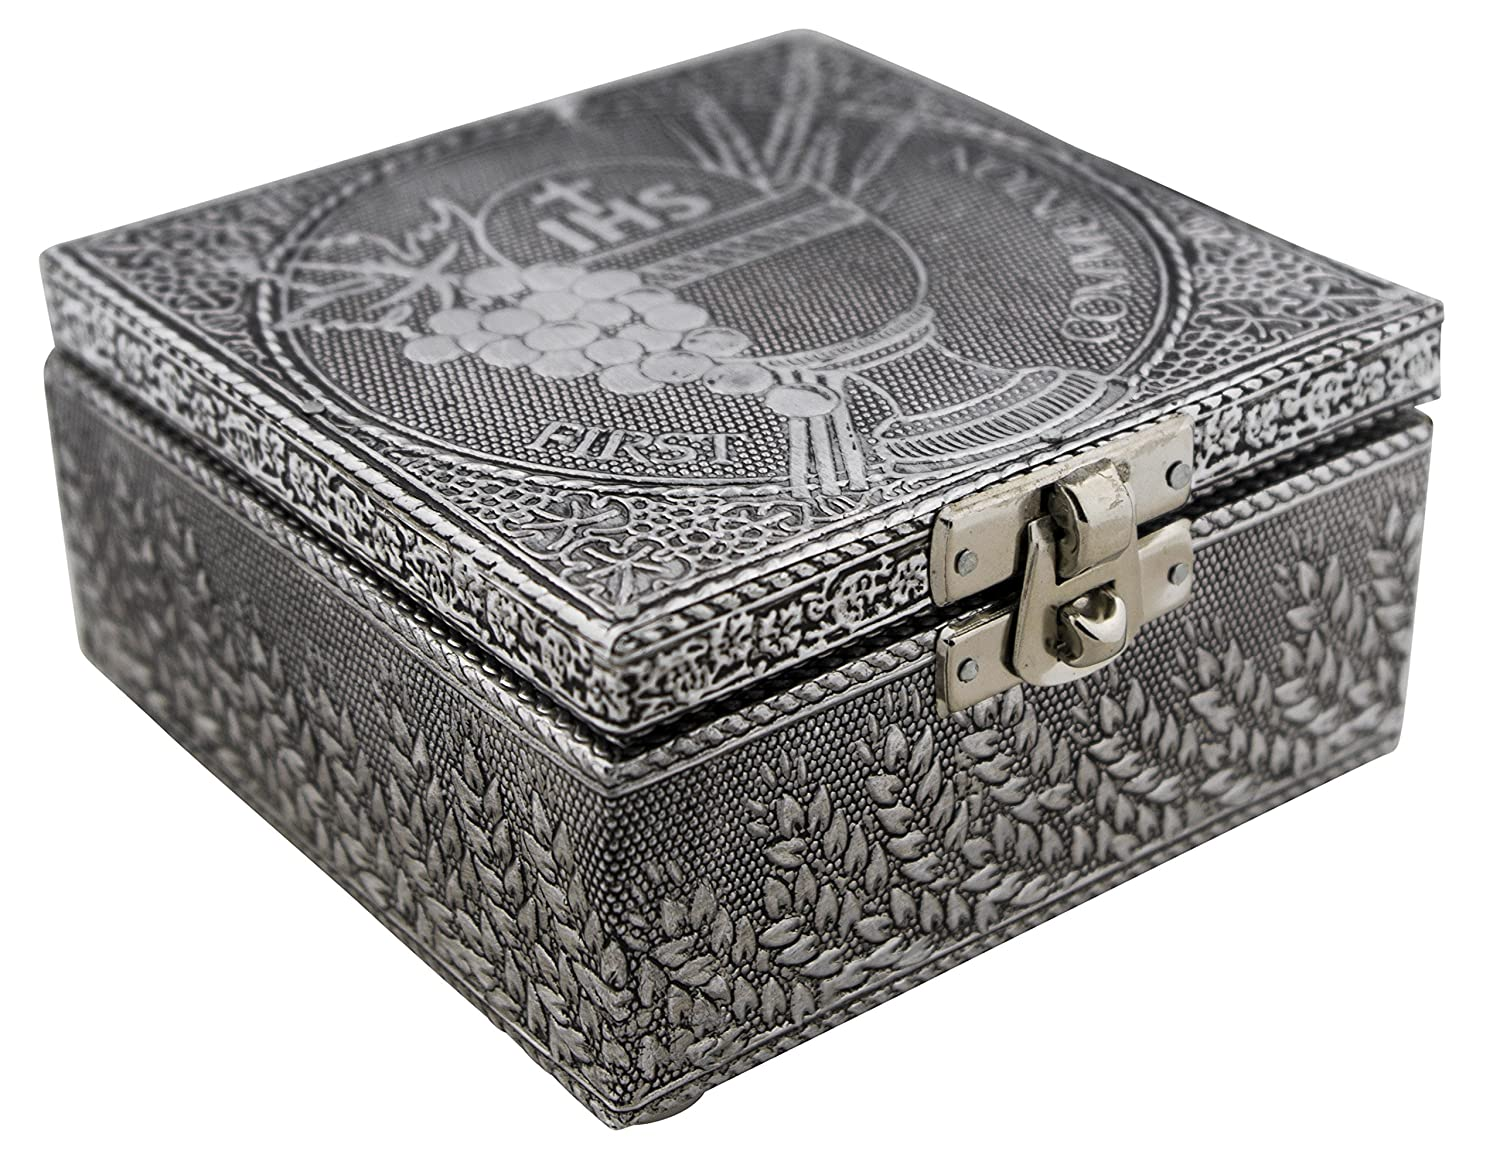 Forever in My Heart, Copper Finish VGI Elegant Jewelry Box with Hammered Metal Cladding and Soft Fabric Interior